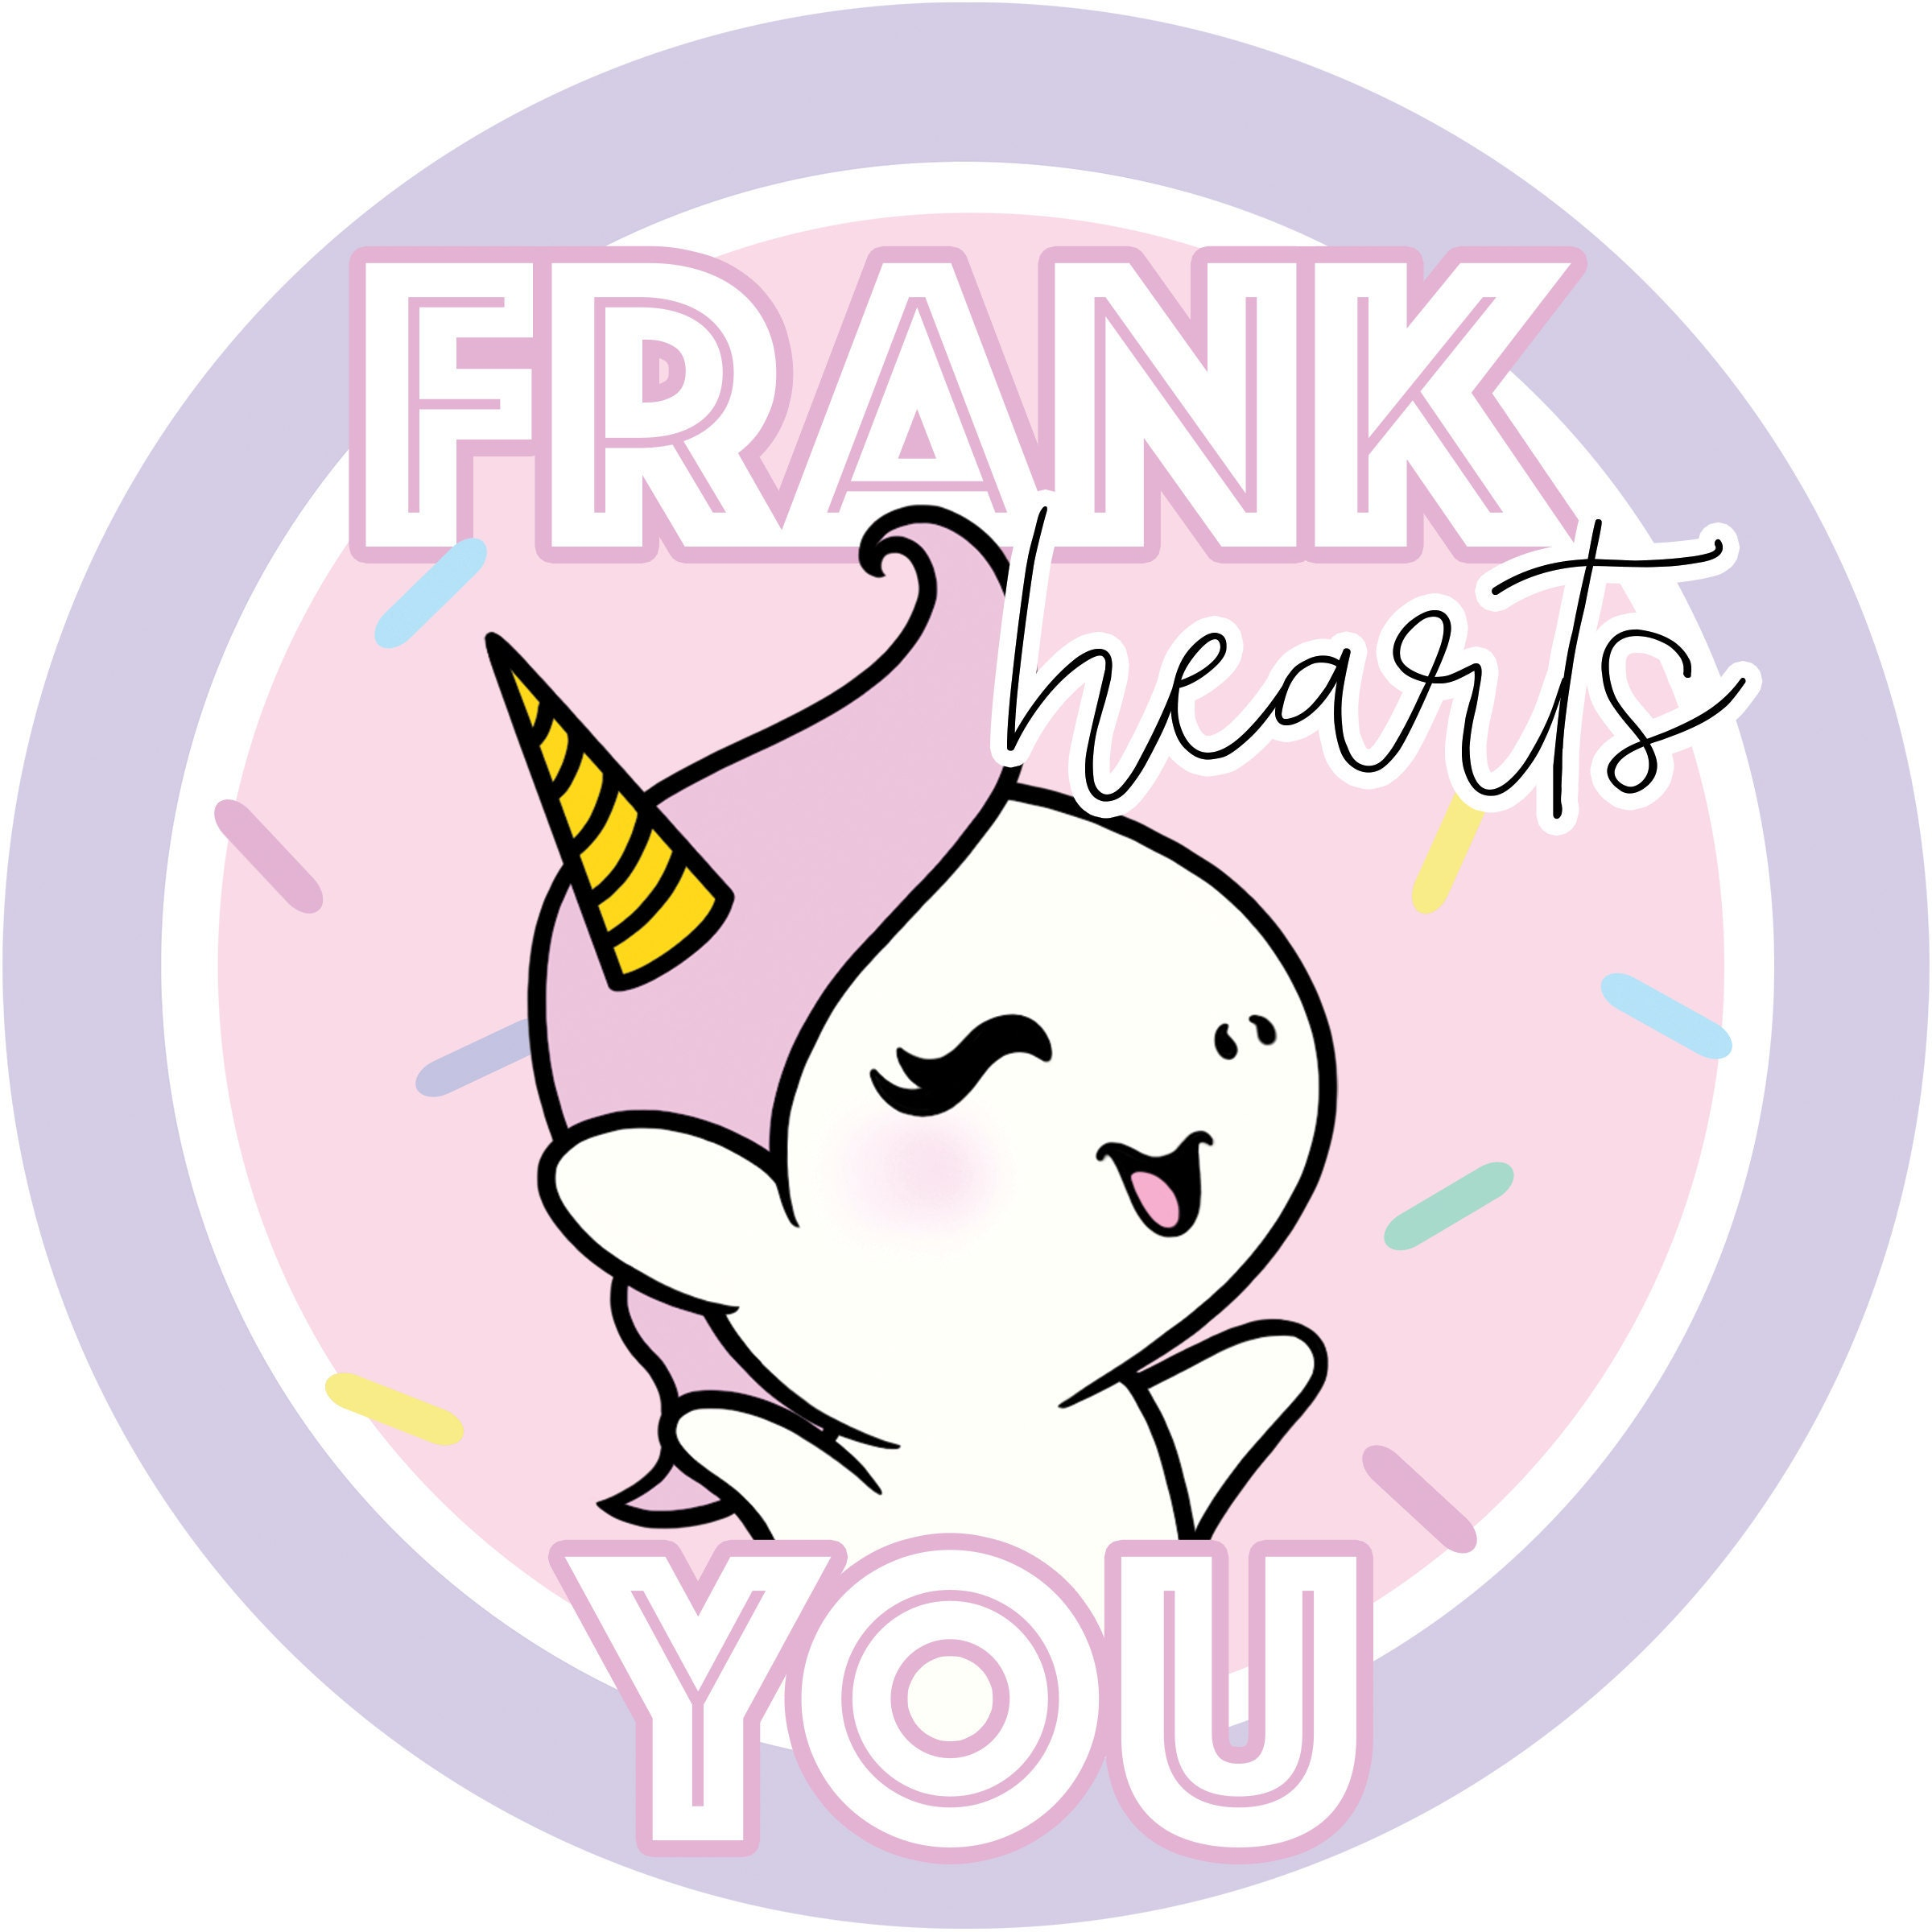 Frank Hearts You